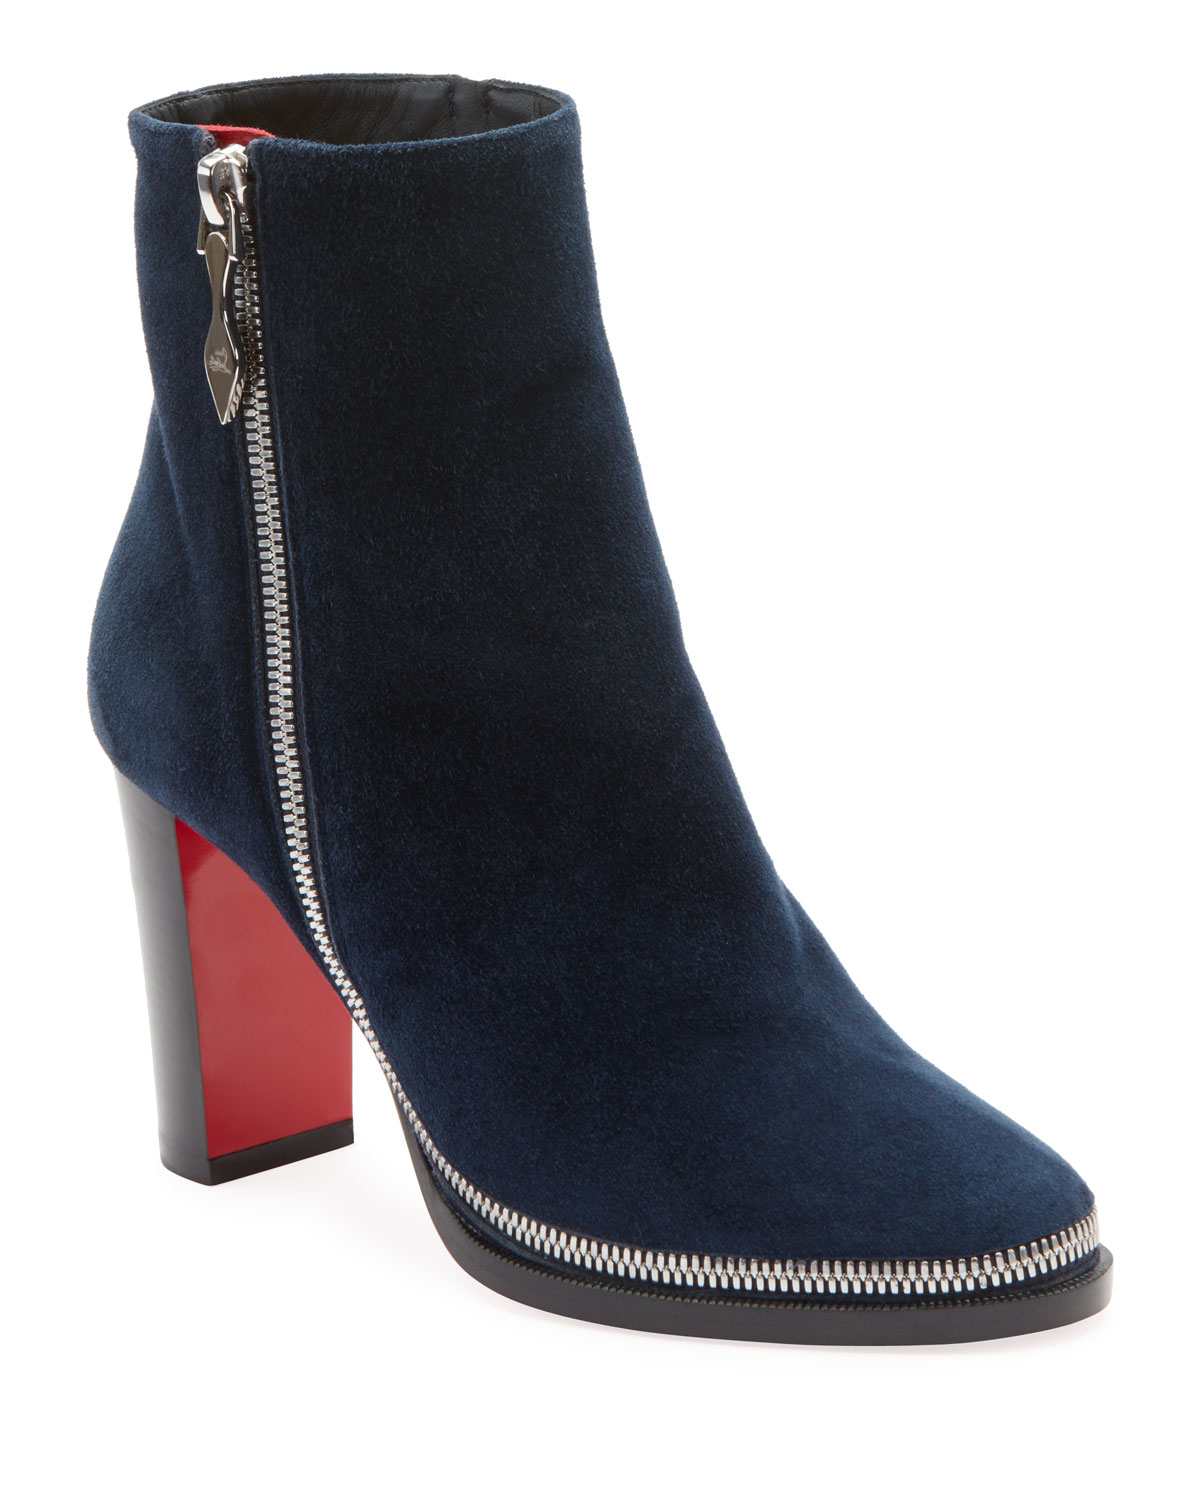 429af7ad3f5 Christian Louboutin Telezip Suede Red Sole Booties